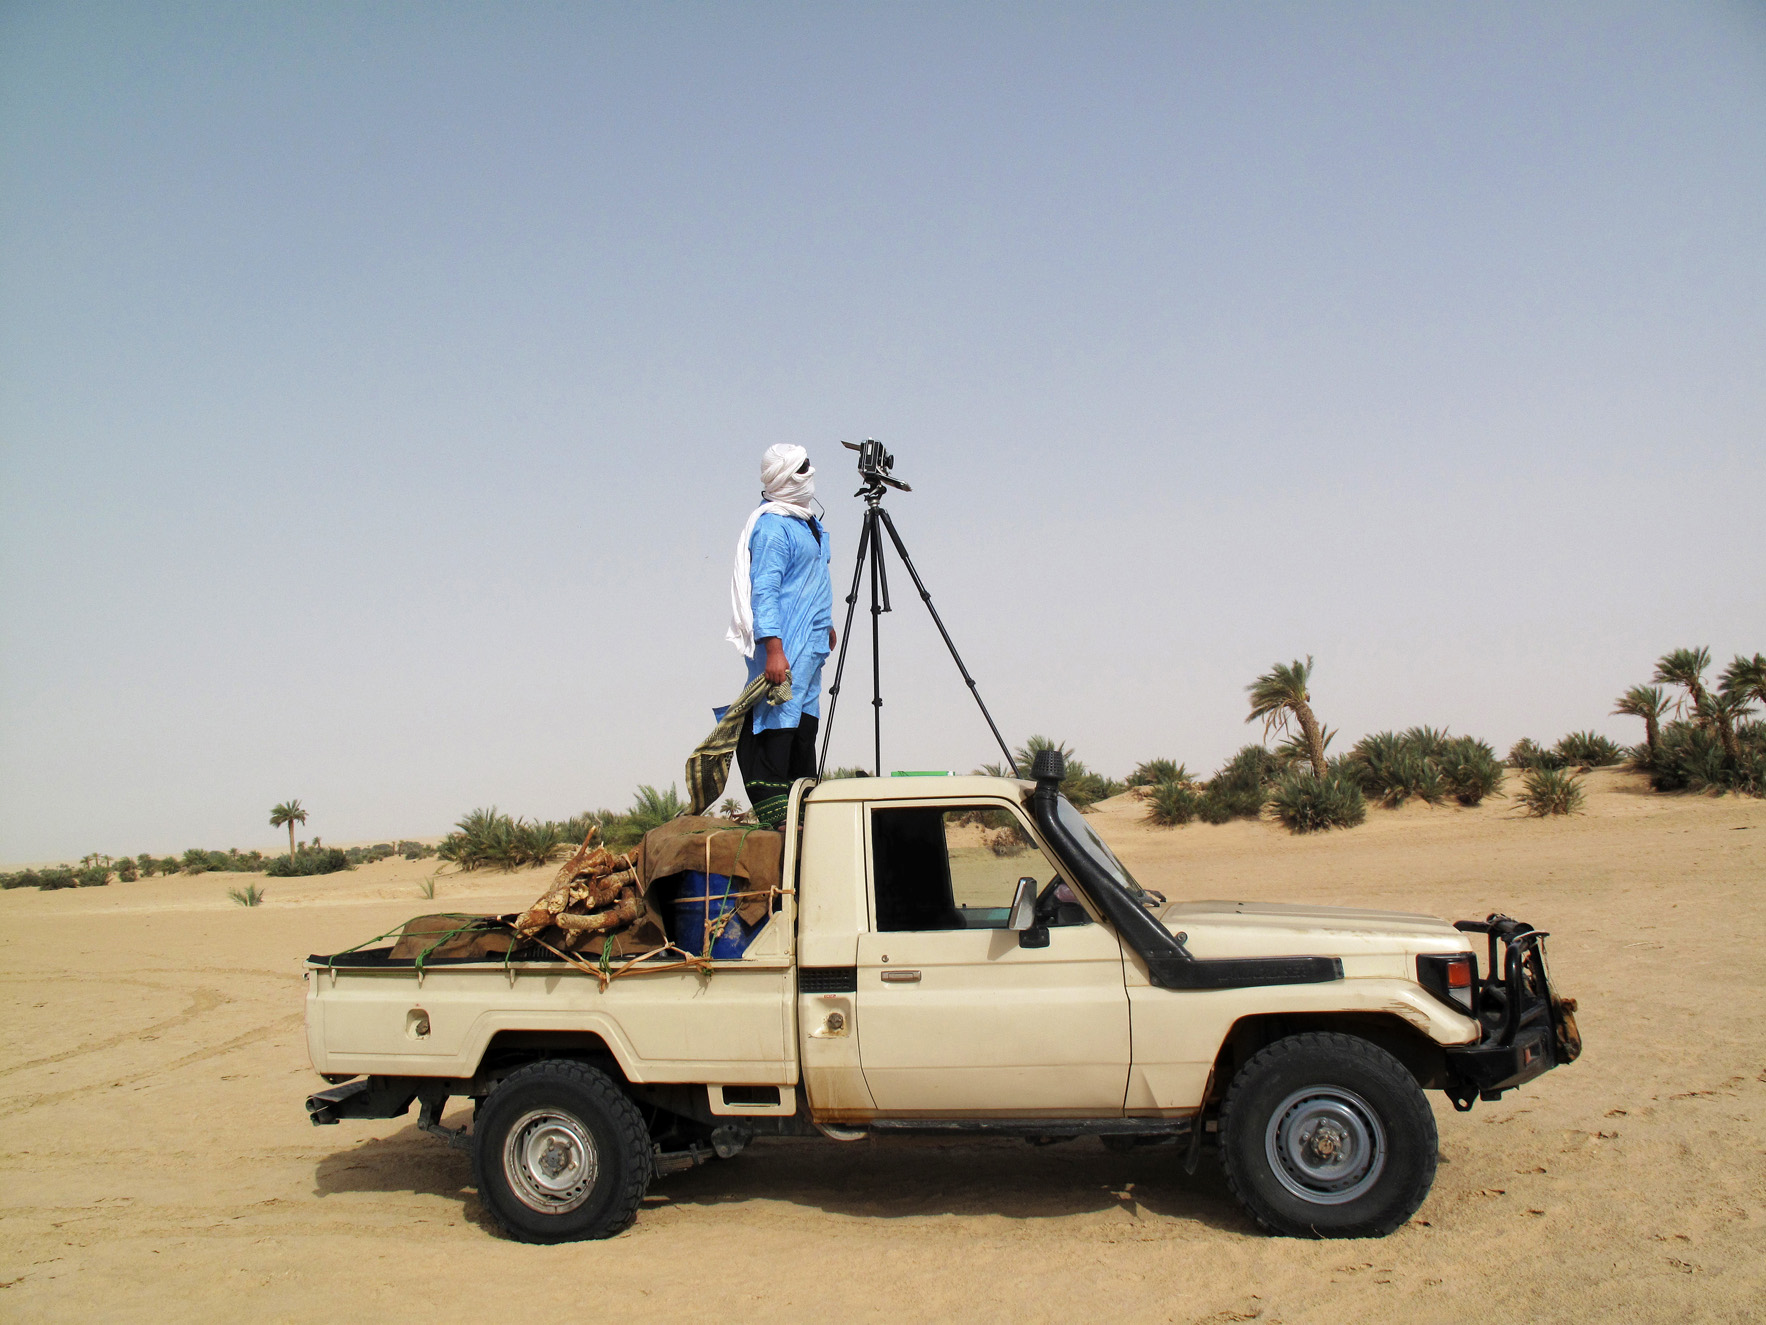 Photographer Philippe Dudouit working in Libya, 2015.